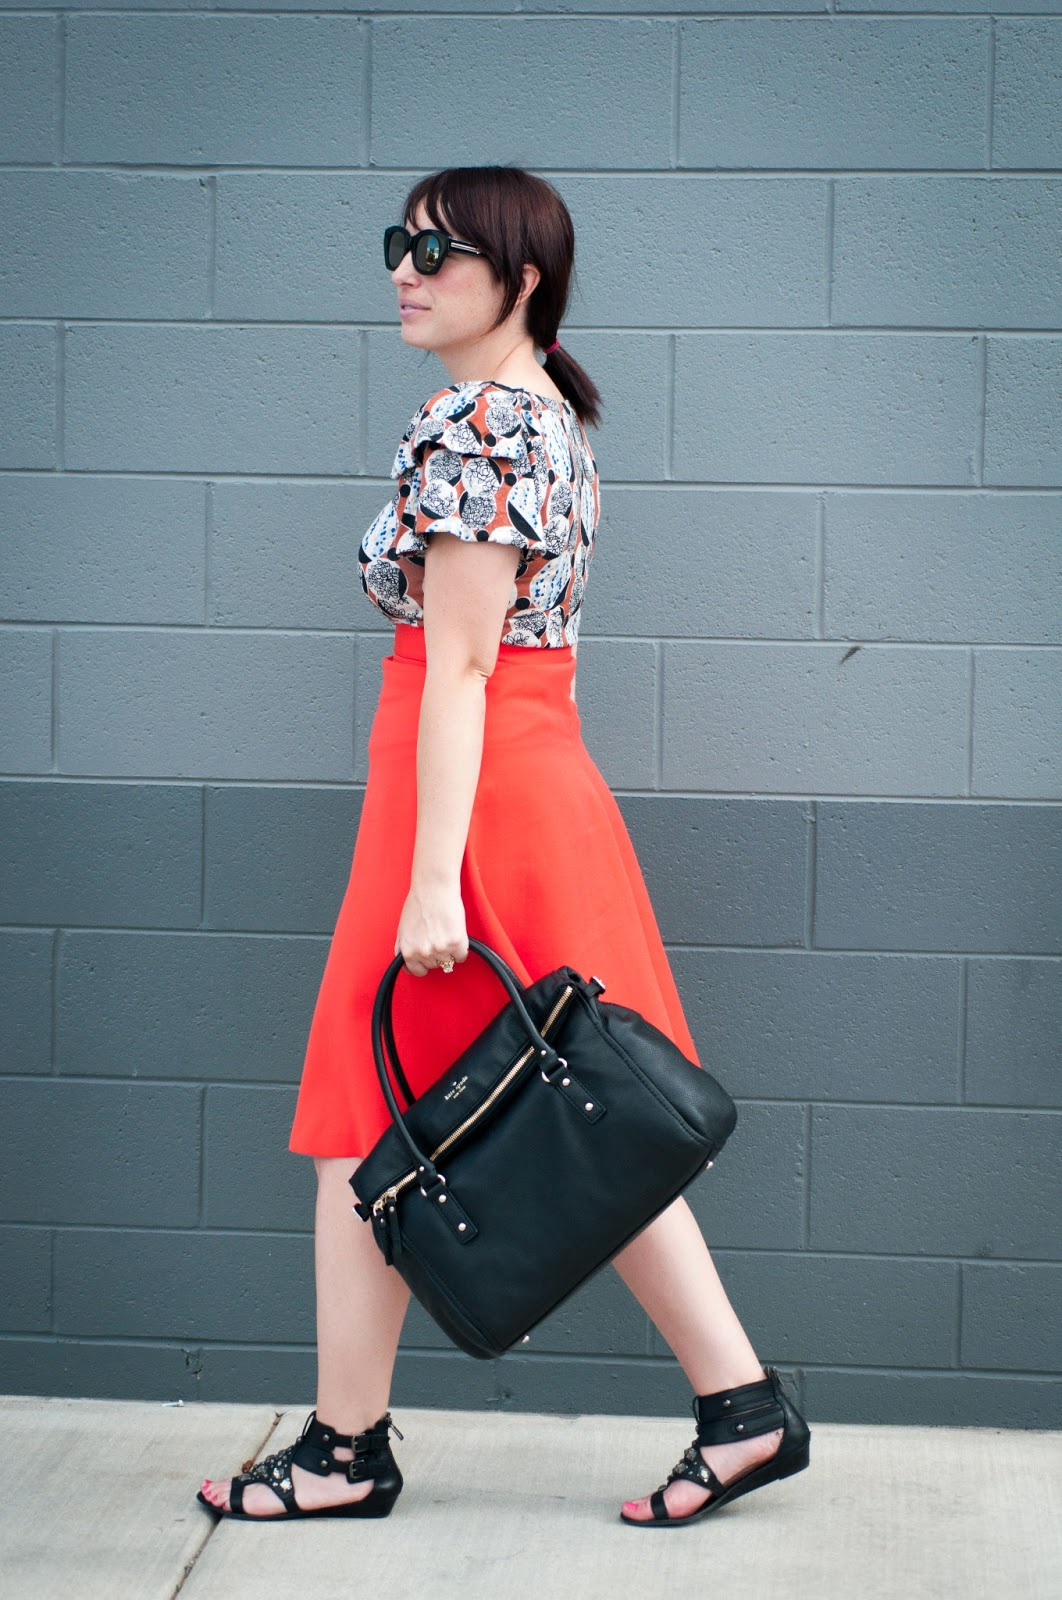 style blog, fashion blog, kate spade new york, sam edleman, karen walker, h and m, anthropologie, ootd